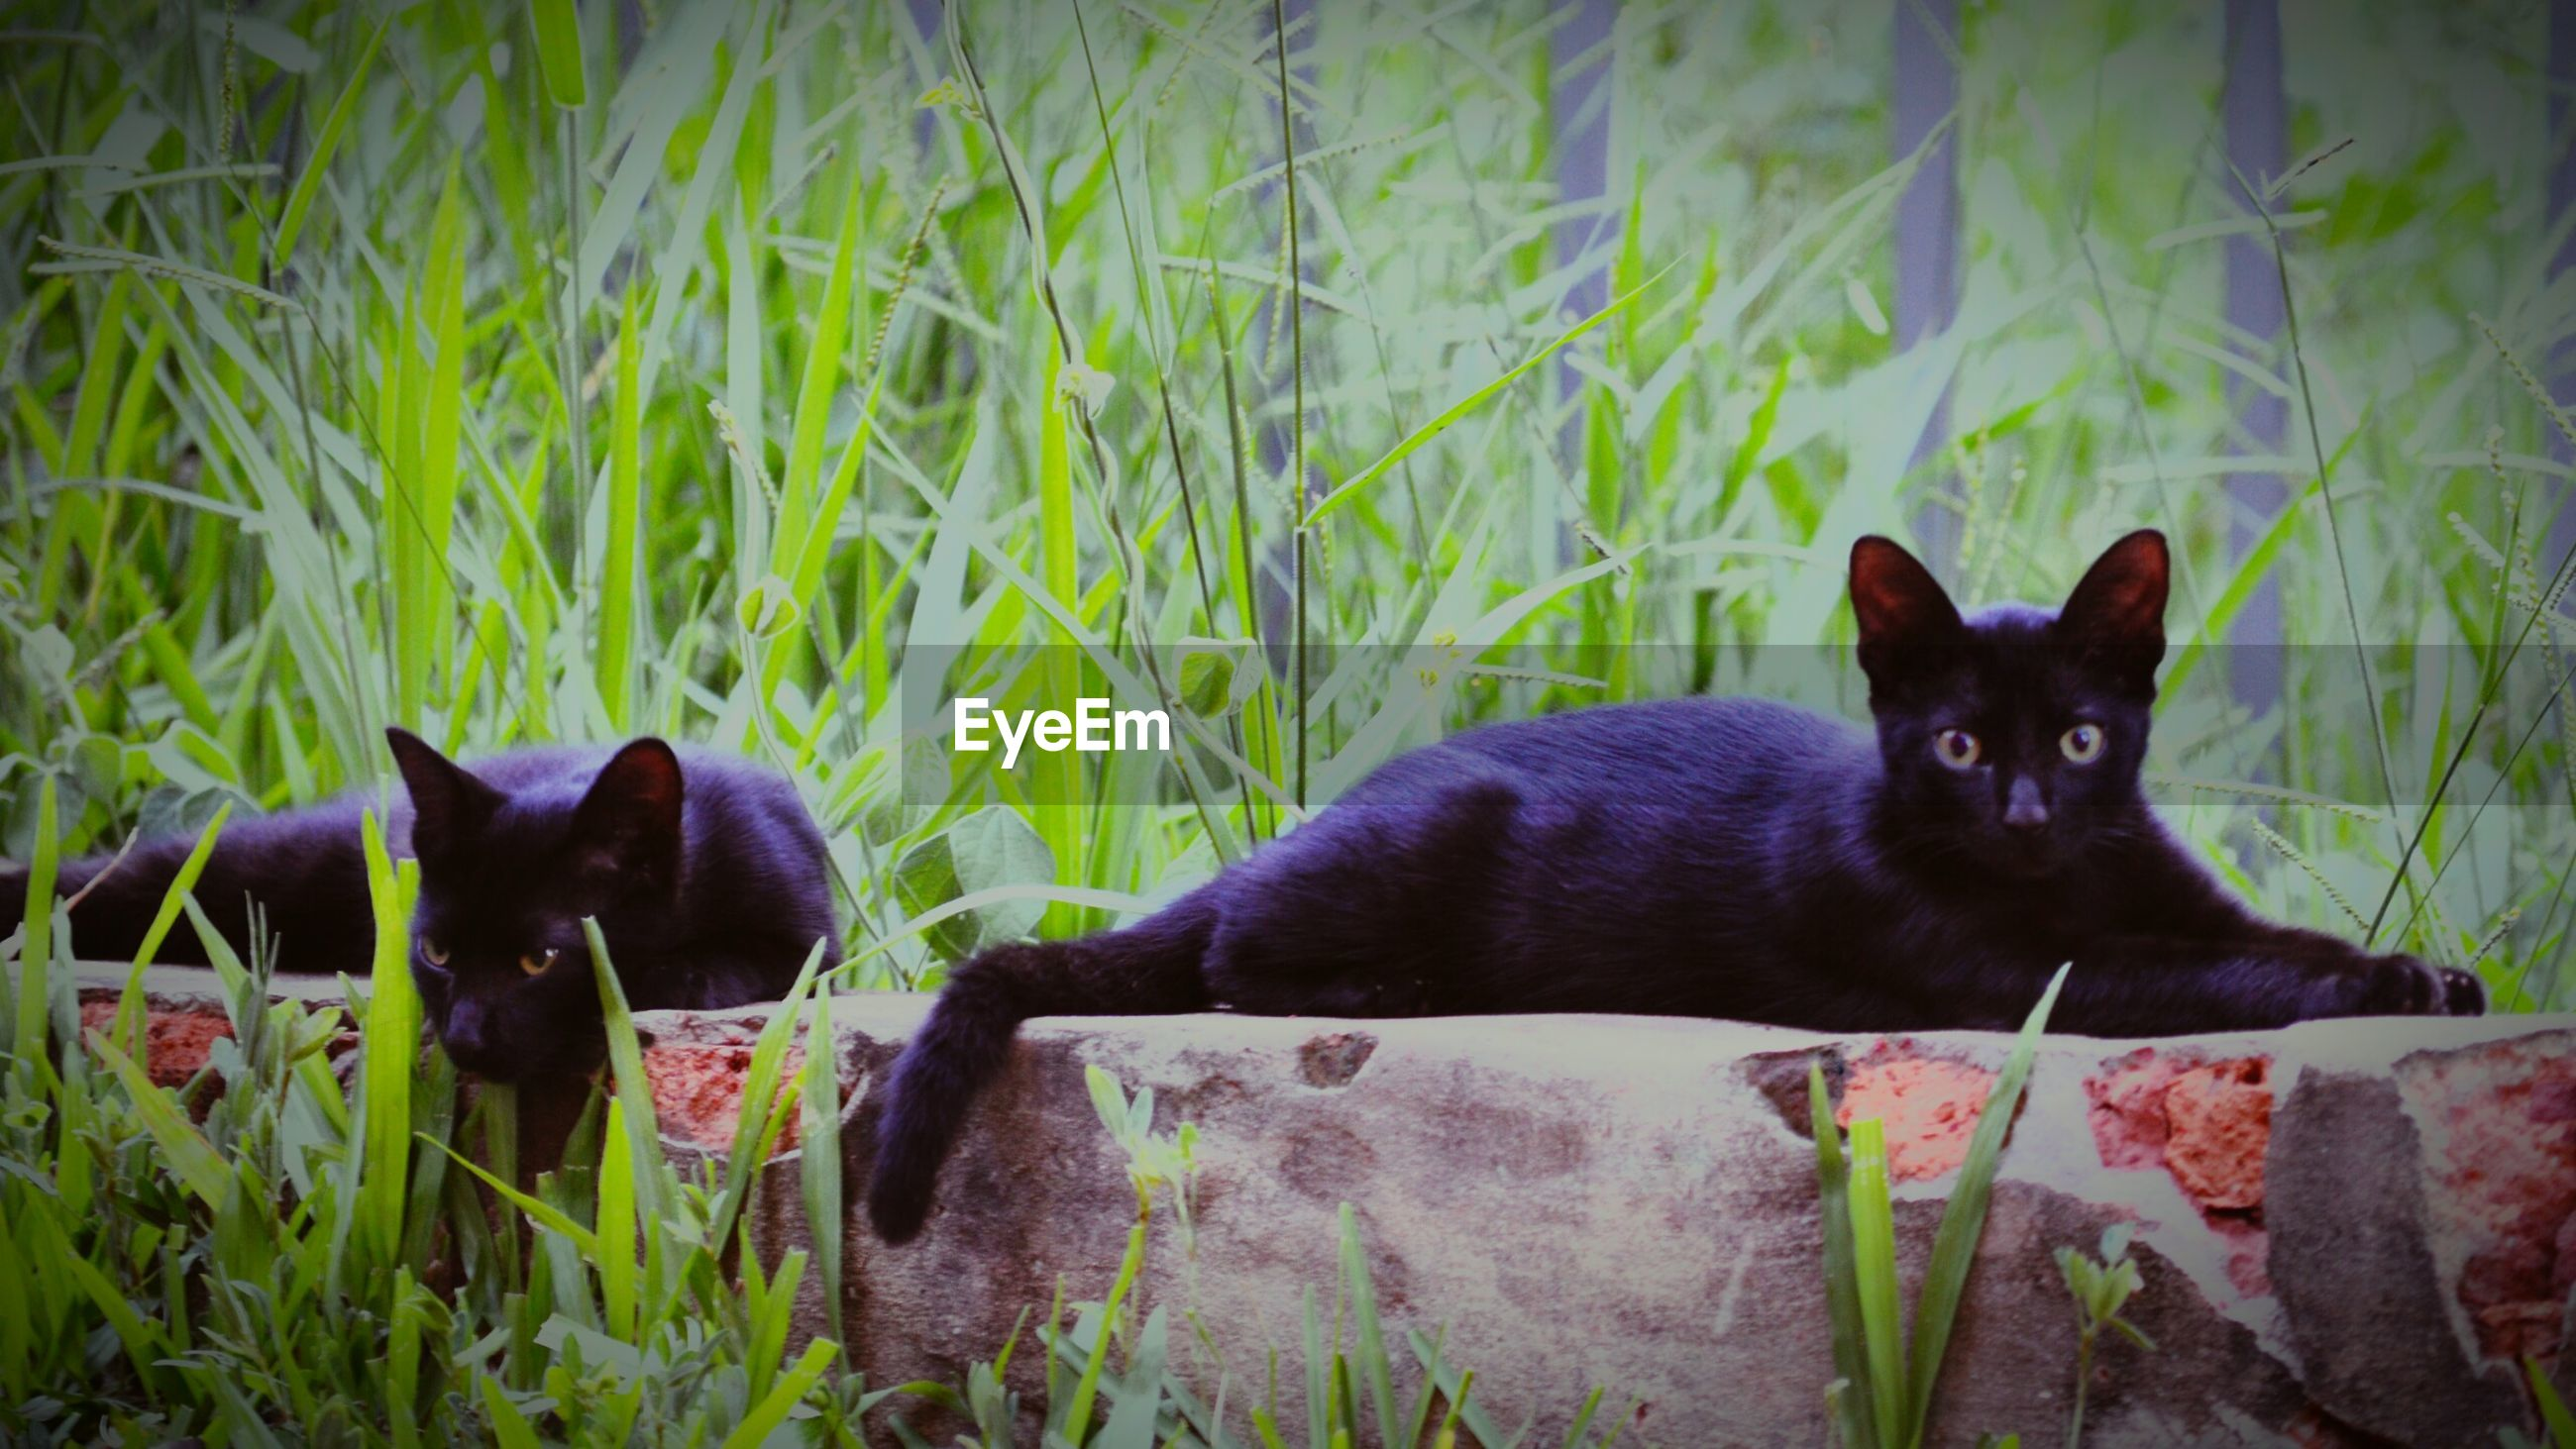 domestic animals, pets, mammal, domestic cat, cat, feline, portrait, relaxation, black color, grass, plant, resting, lying down, green color, no people, relaxing, nature, growth, alertness, whisker, animal head, day, close-up, staring, animal, grassy, black